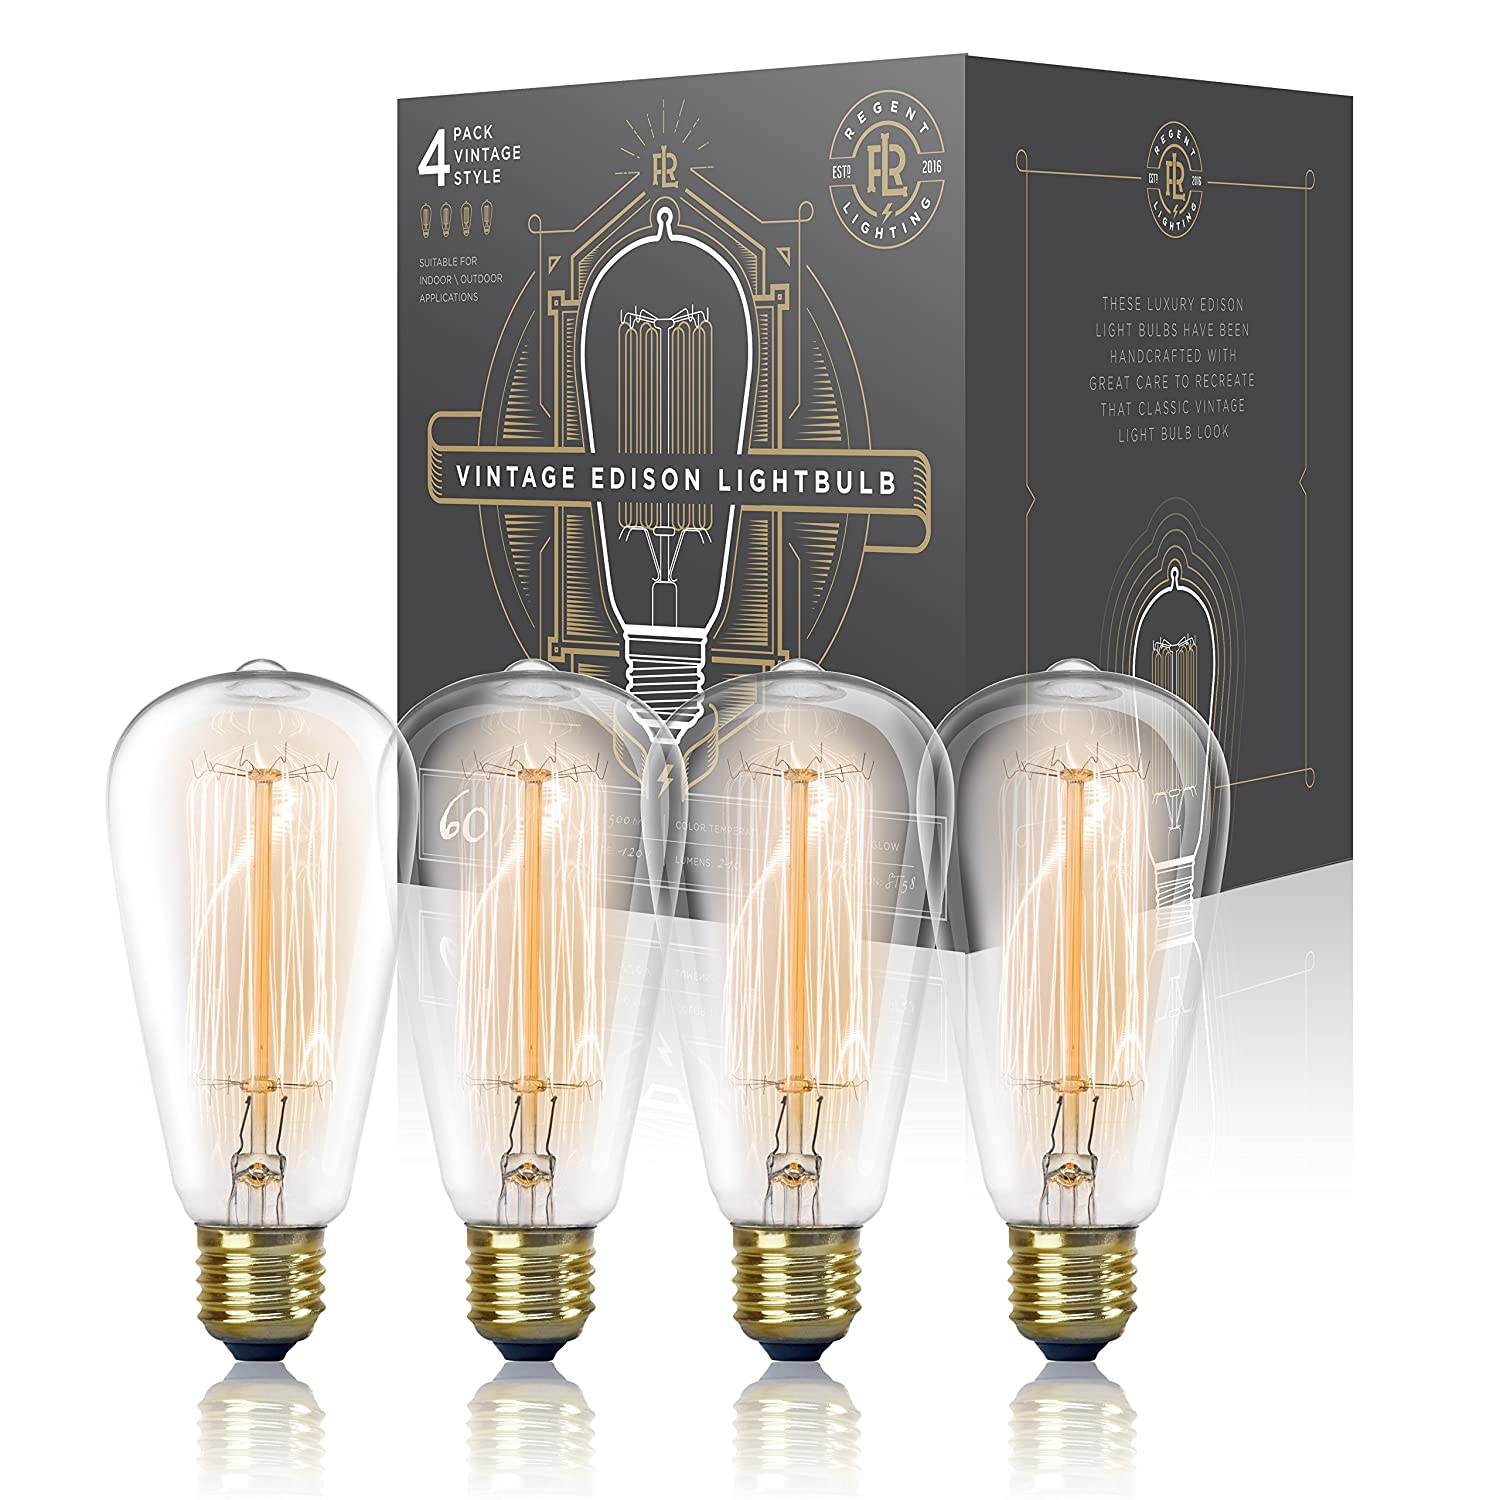 Vintage edison light bulb 60w 4 pack dimmable exposed filament vintage edison light bulb 60w 4 pack dimmable exposed filament incandescent clear st58 teardrop squirrel cage style e26 medium base 2700k 210 aloadofball Image collections